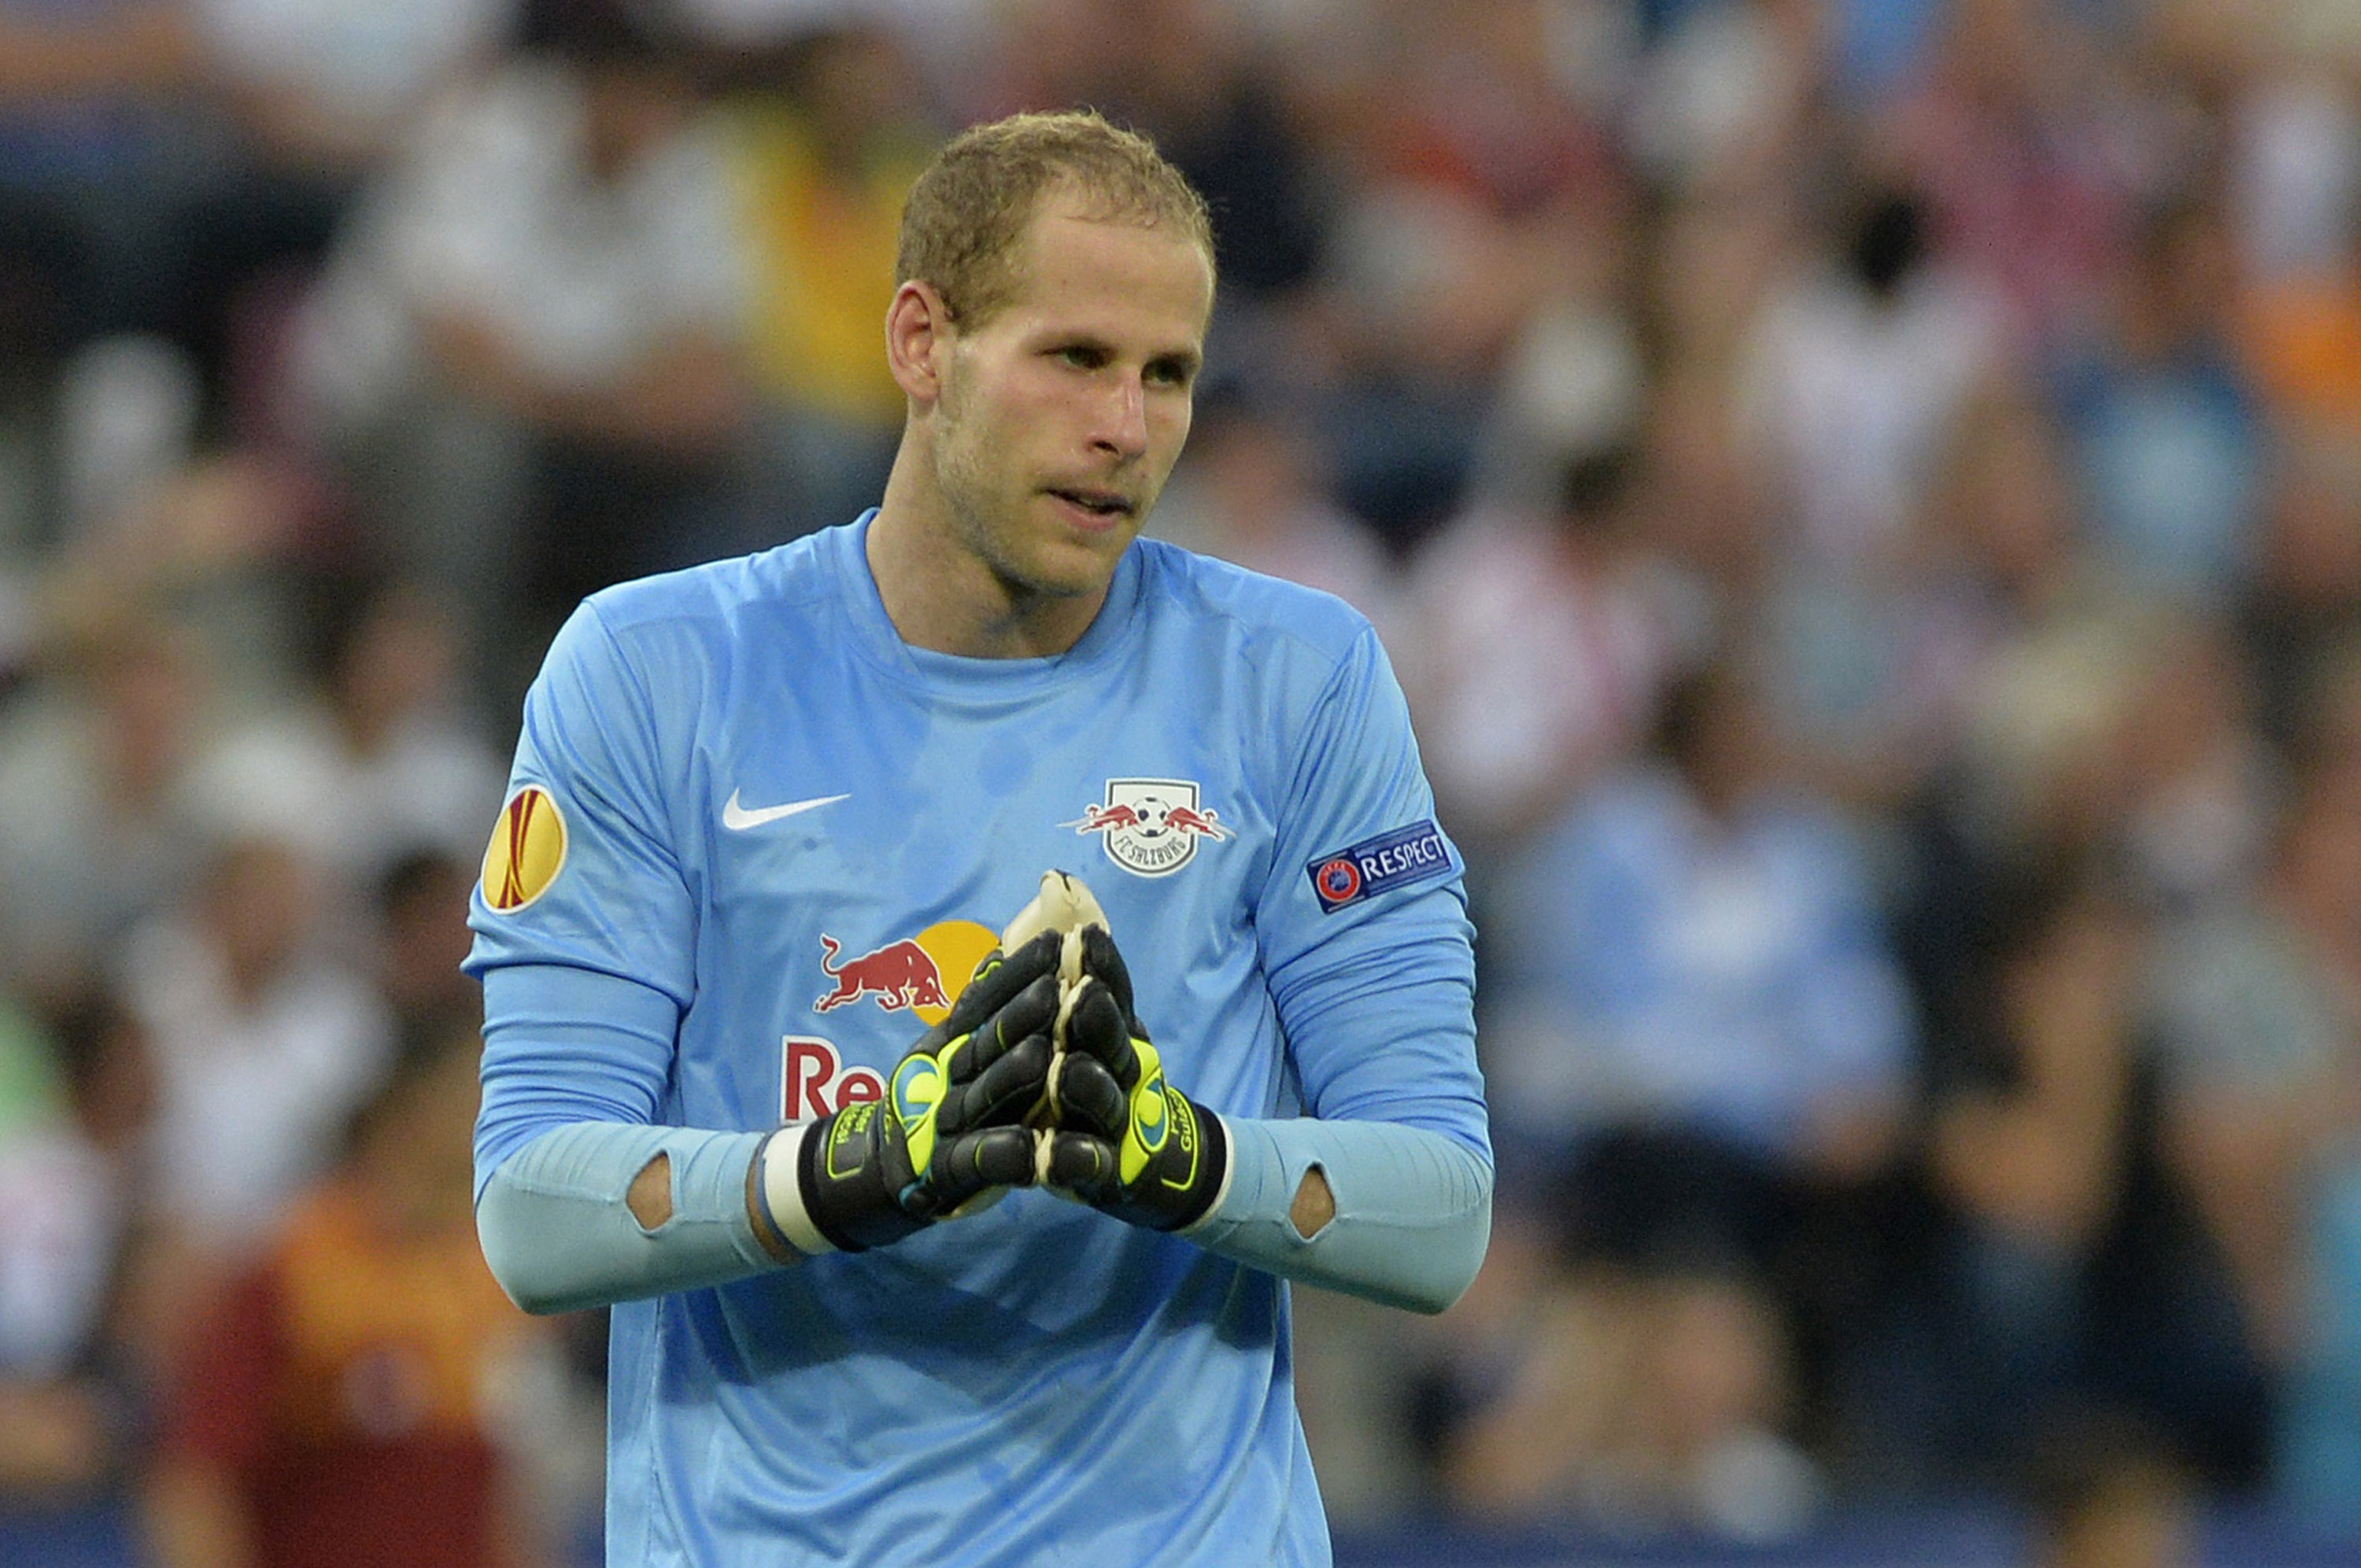 Chelsea linked with RB Leipzig goalkeeper Peter Gulacsi